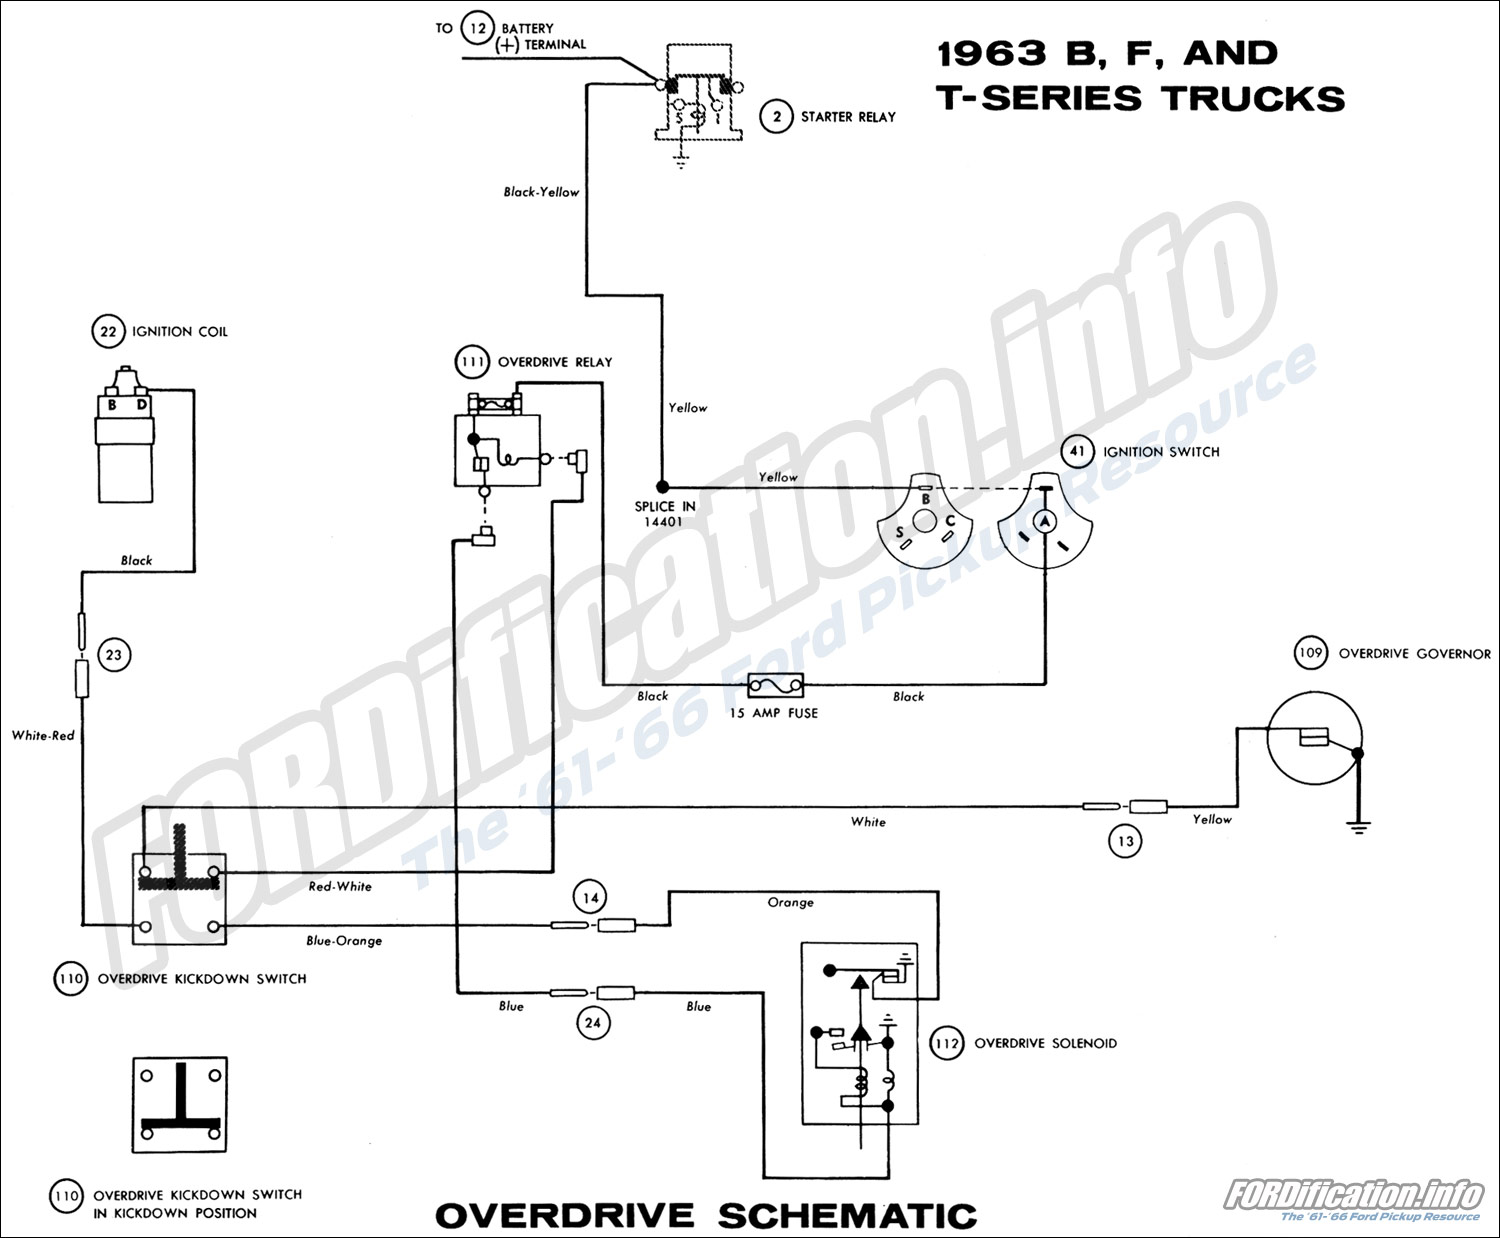 1963 ford truck wiring diagrams fordification info the '61 '66 ford f100 ignition coil wiring 1963 b, f, and t series trucks overdrive schematic